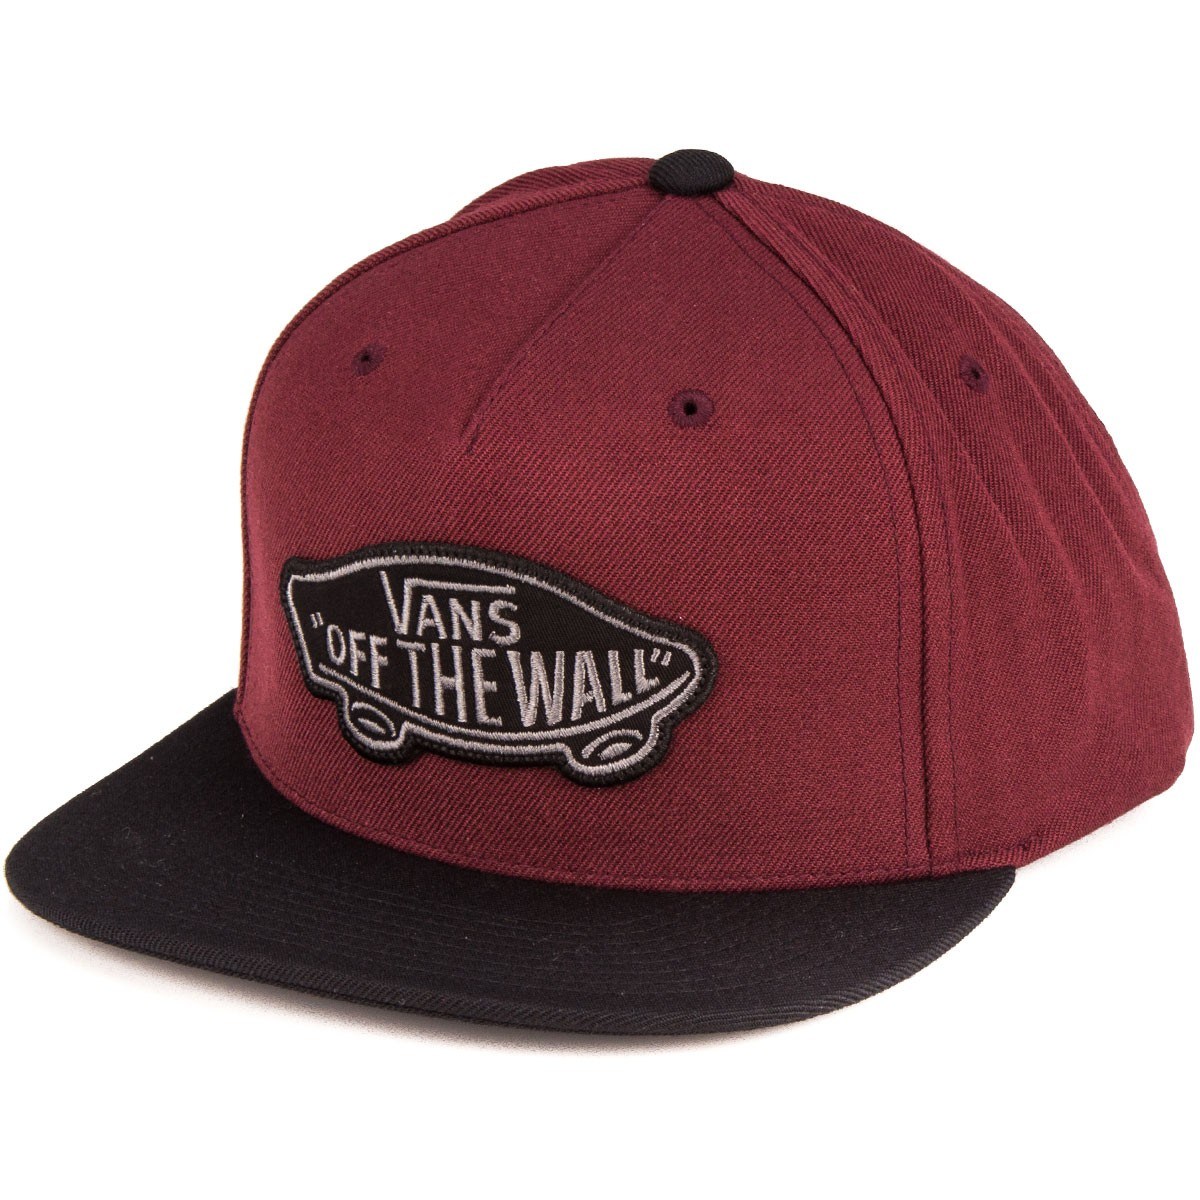 Vans Classic Patch Snapback Hat f56ae7349df8